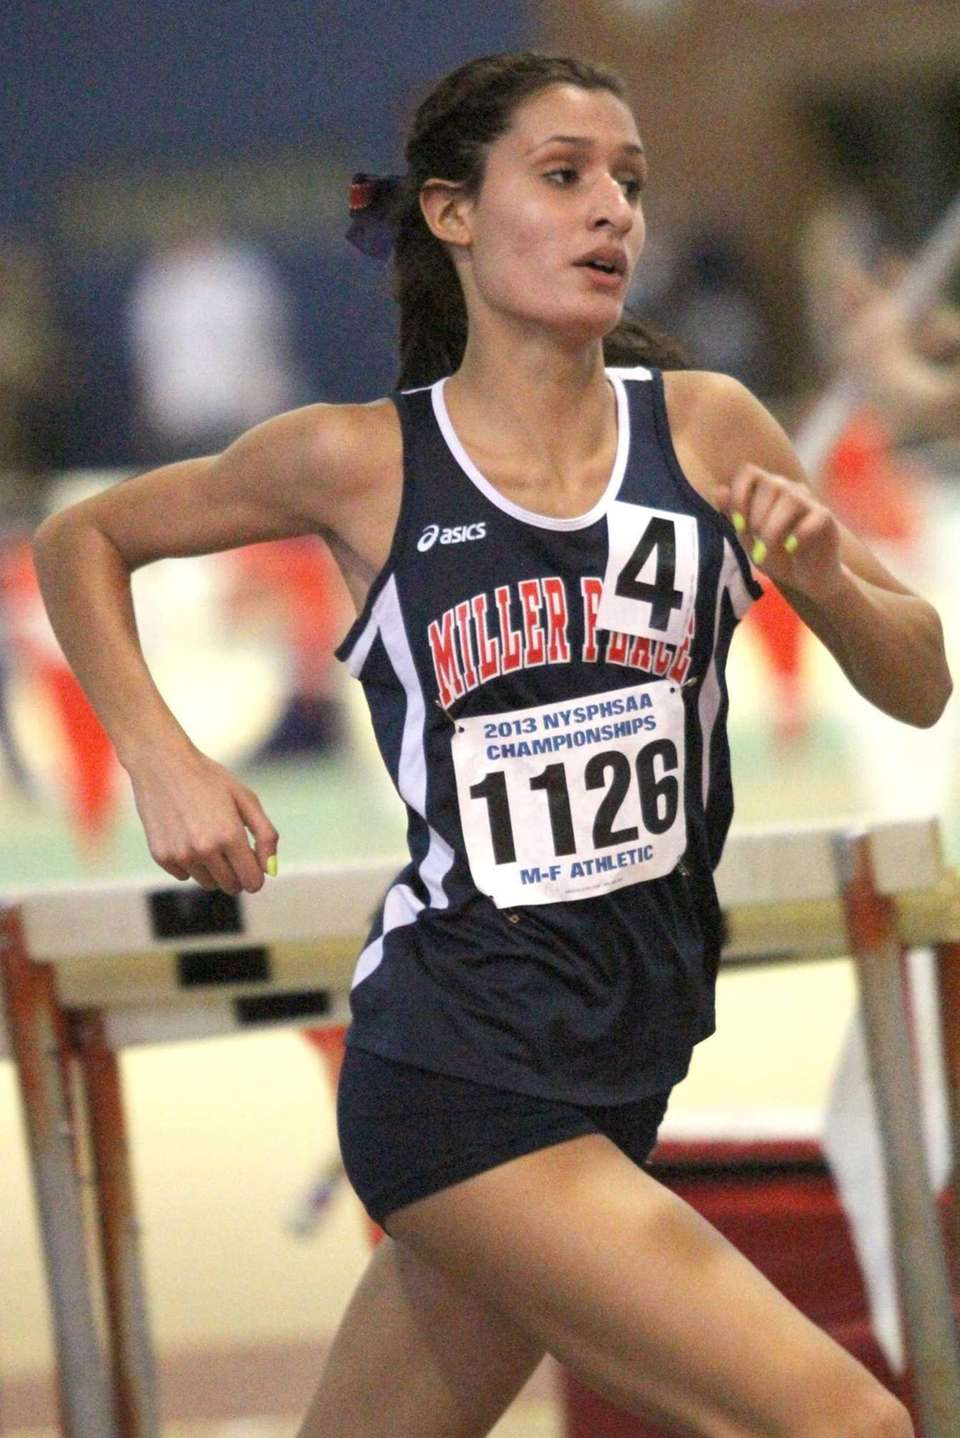 Miller Place's Tiana Guevara competes in the 1500